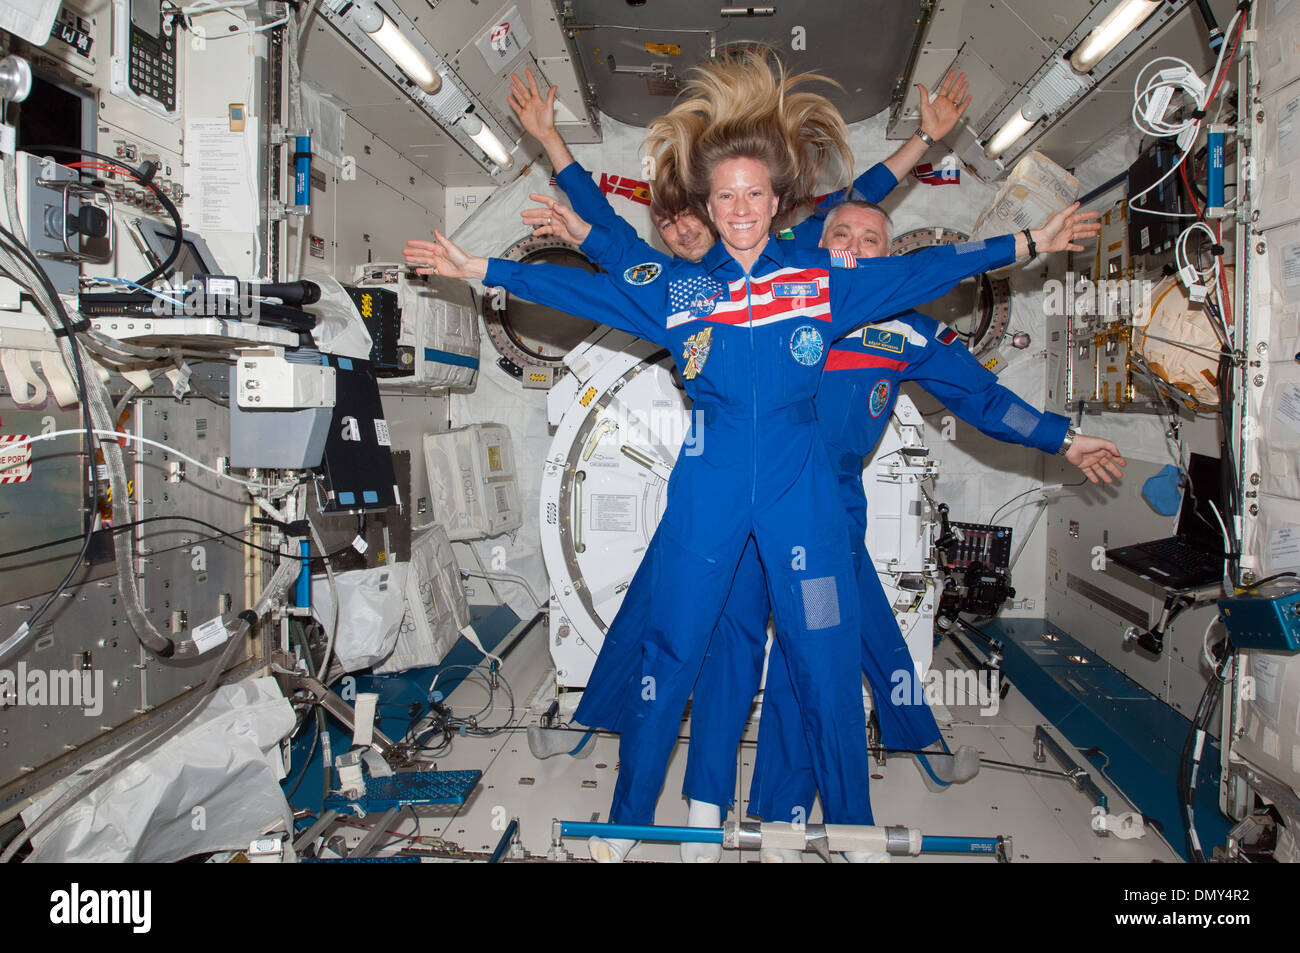 Astronauts in zero gravity on the International Space Station. - Stock Image